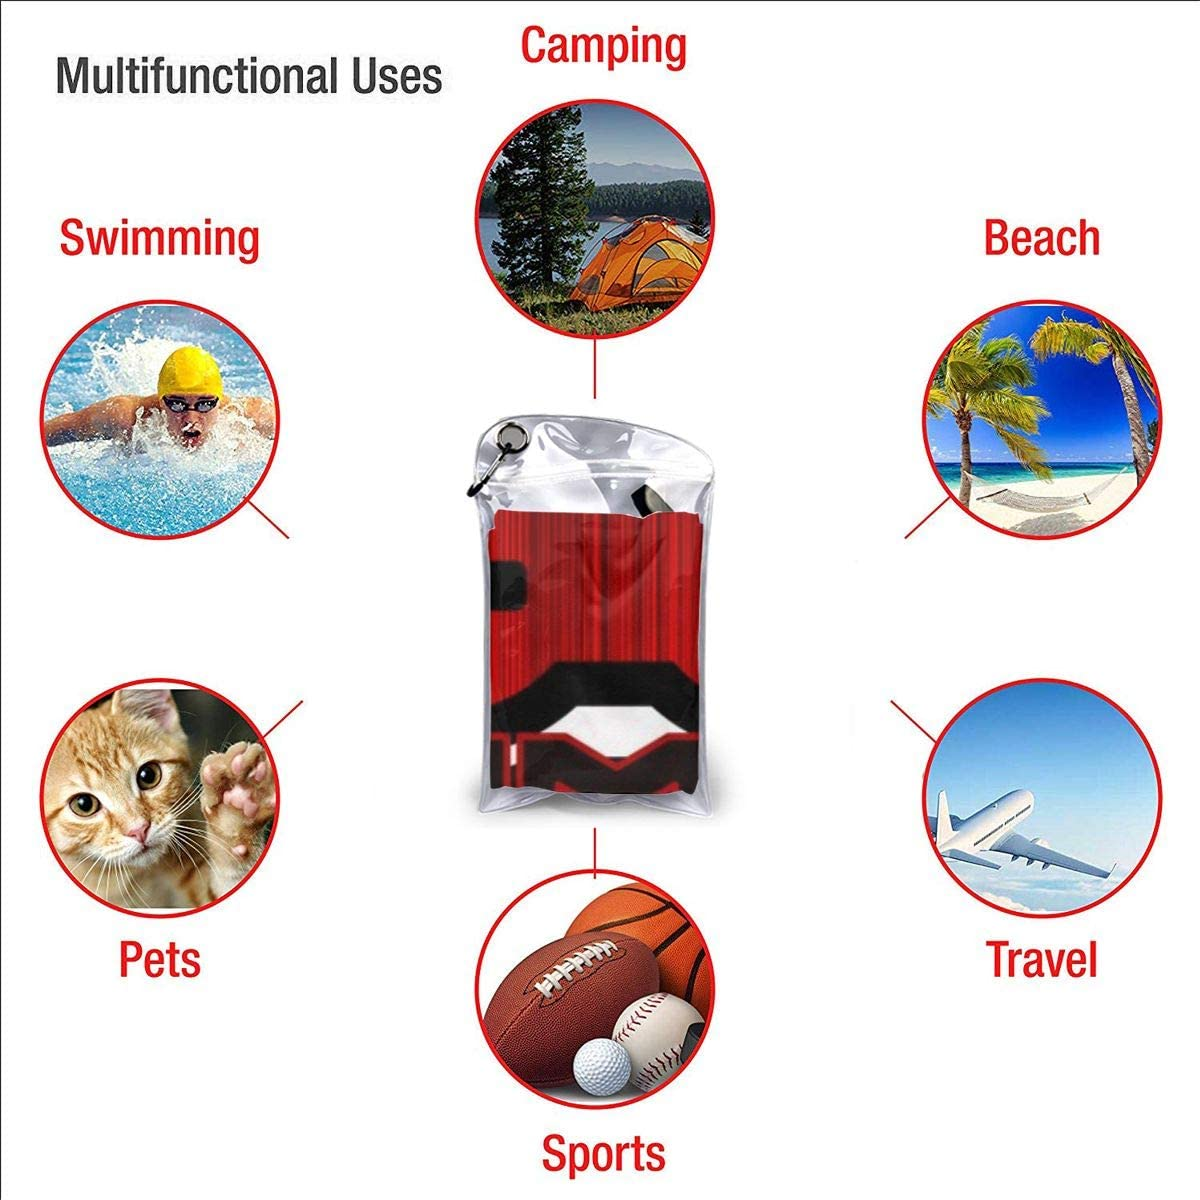 Quick Dry Camping Towels Best Lightweight Travel Towels for The Swimming,Sports,Beach,Gym 31.5x63 Inches Baytor Red Gamer Beach Towel